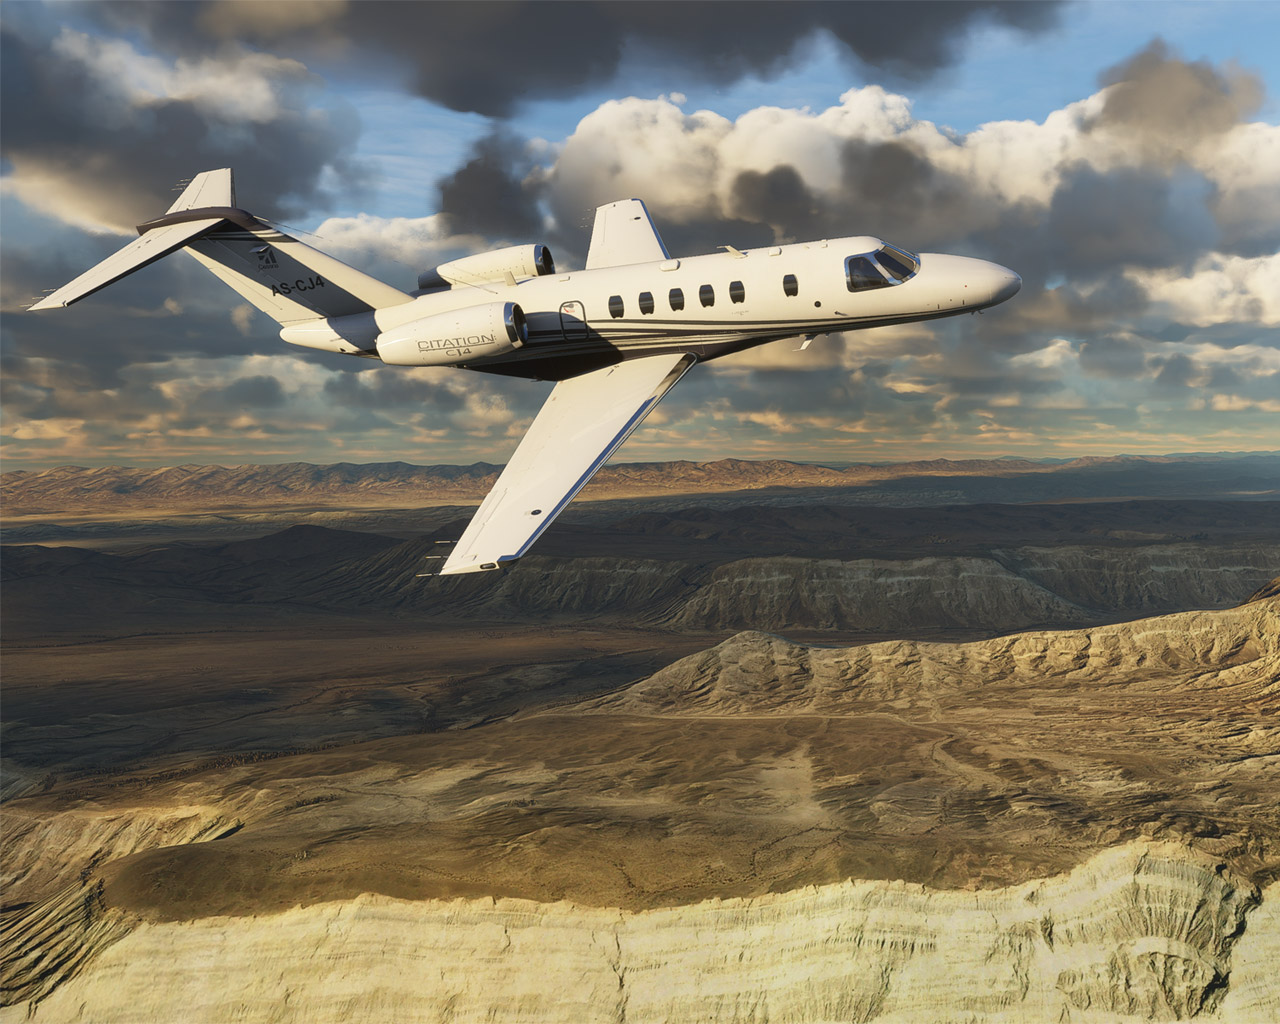 Free Microsoft Flight Simulator (2020) Wallpaper in 1280x1024